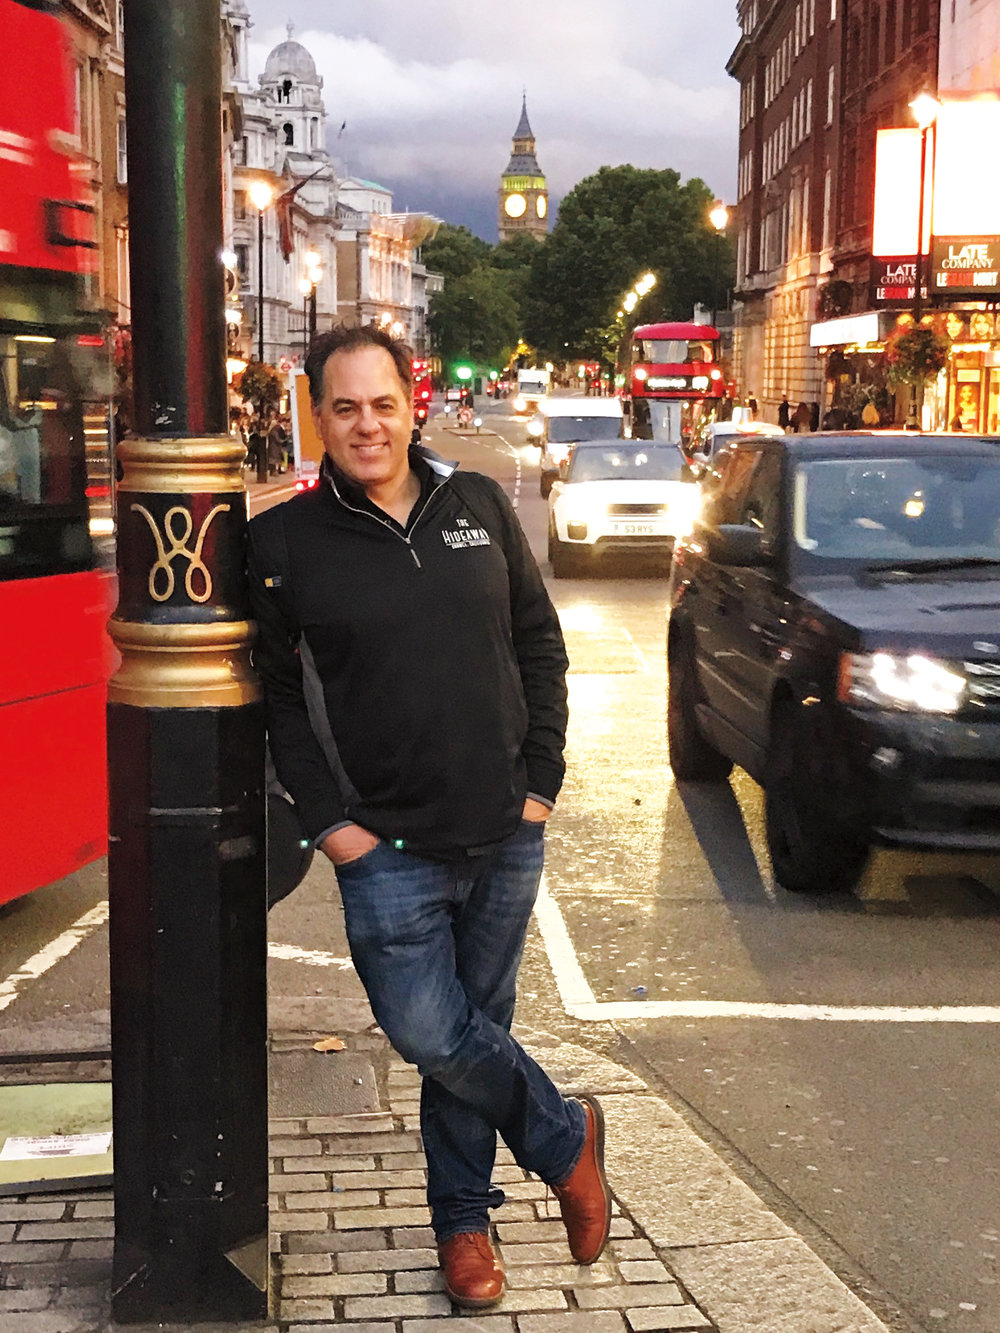 Adam Young '81 on his summer walkabout in Trafalgar Square, London.